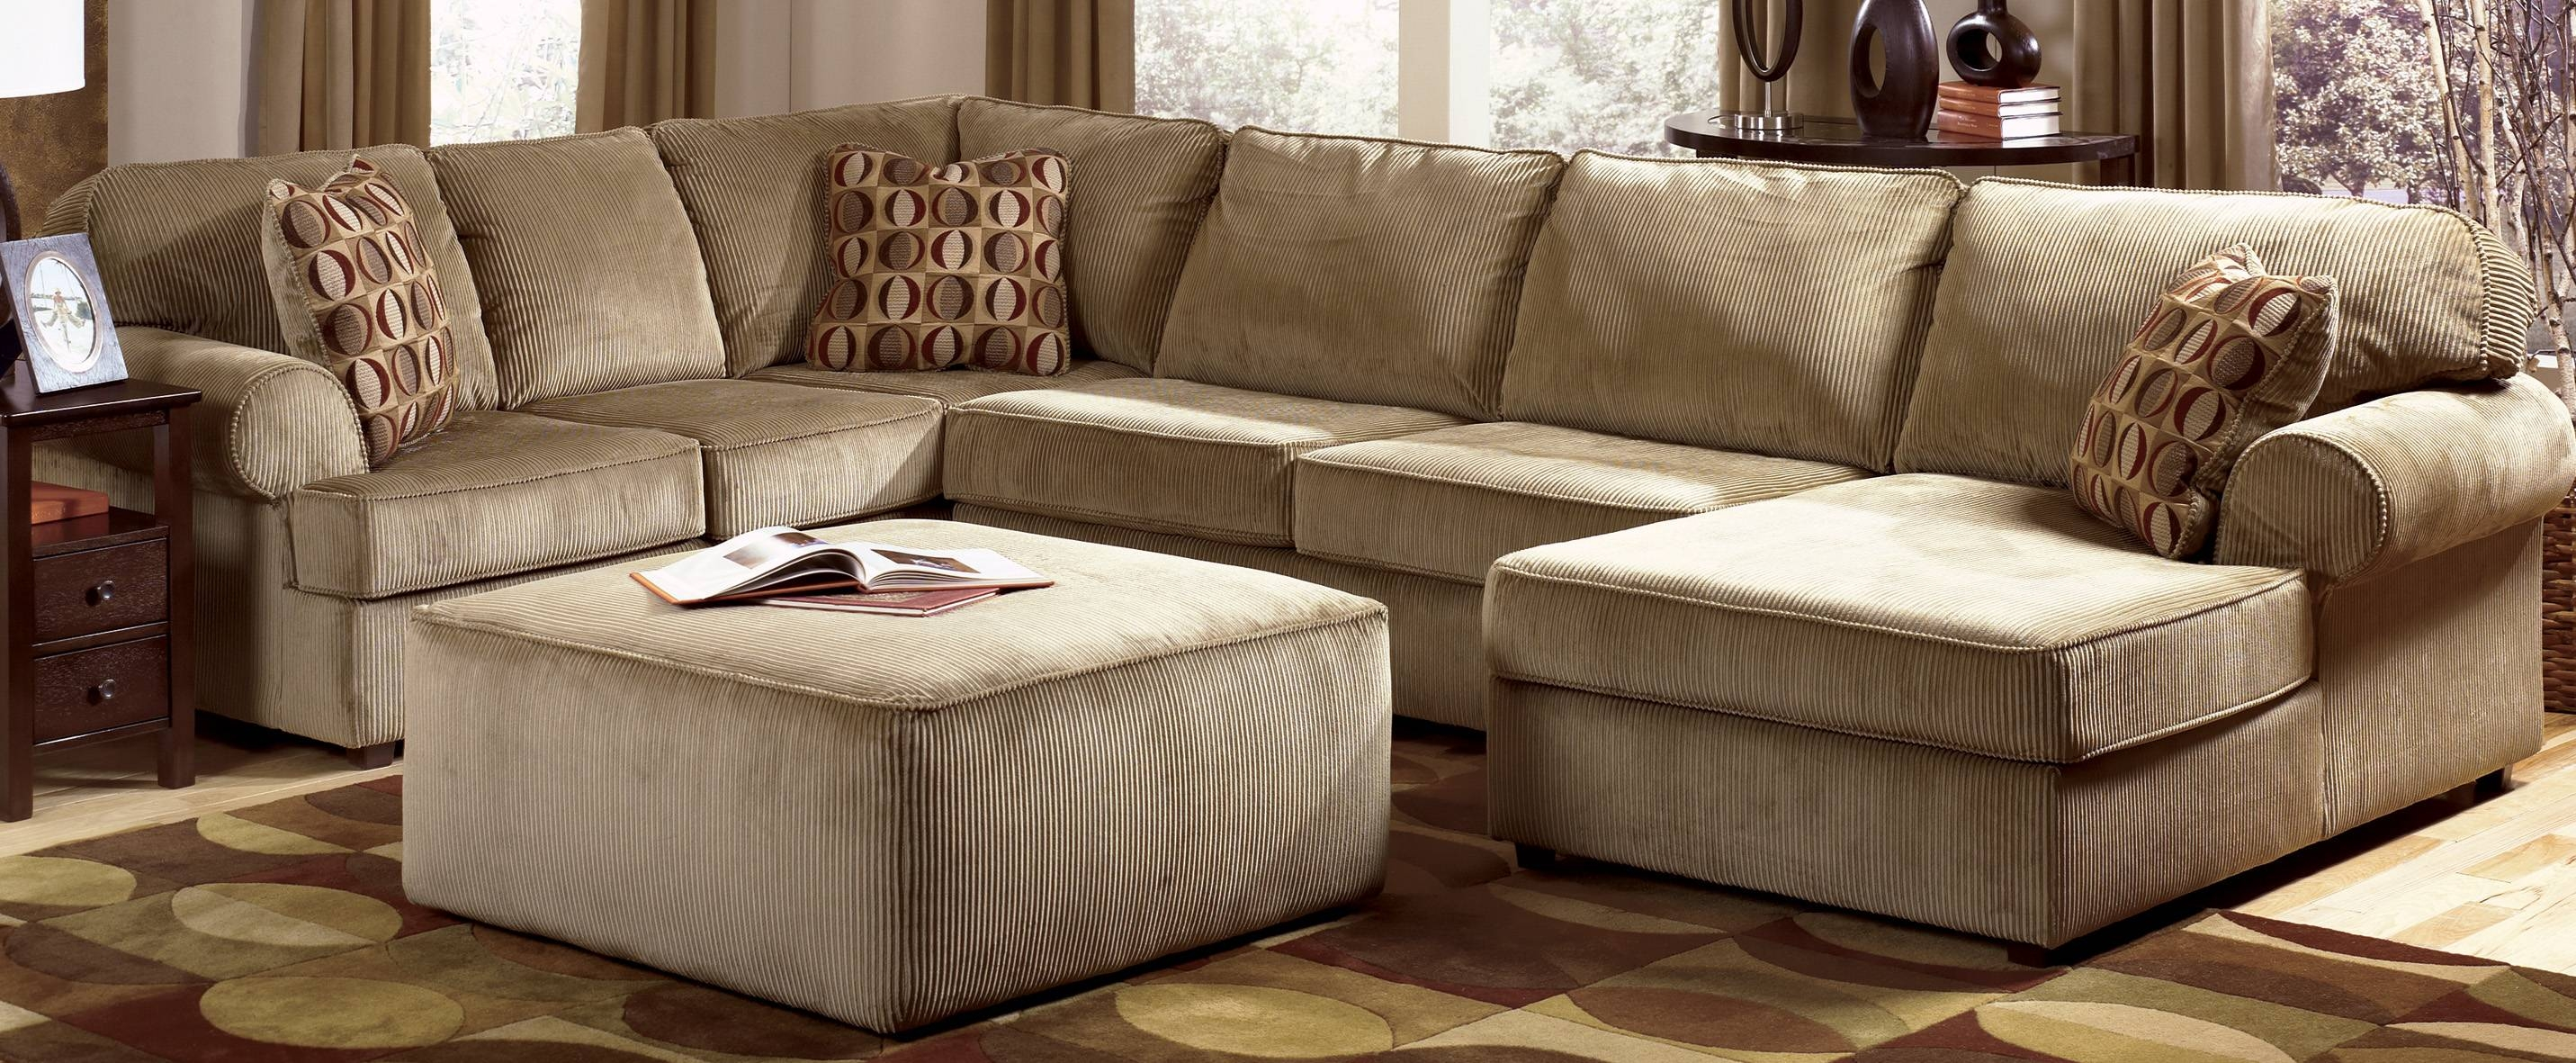 Living Room: Cool Affordable Sectional Sofas For Elegant Living throughout Elegant Sectional Sofa (Image 21 of 25)